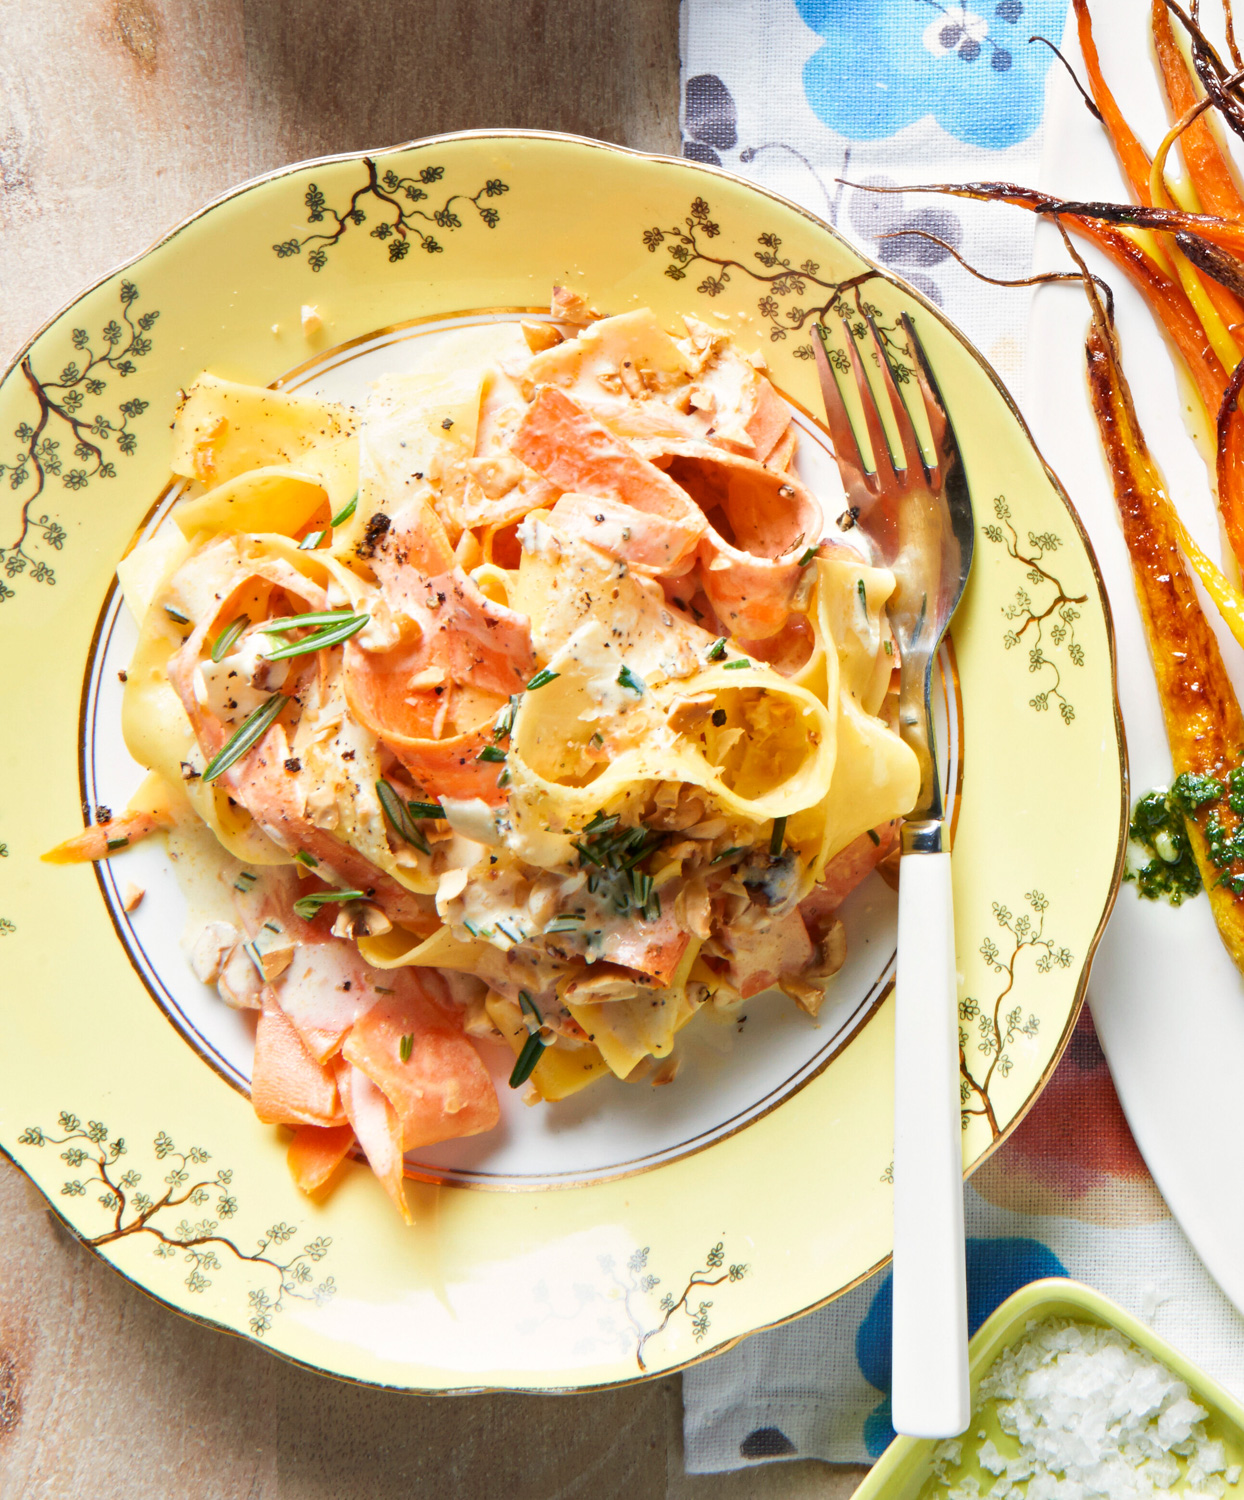 Rosemary and Carrot Ribbon Pappardelle